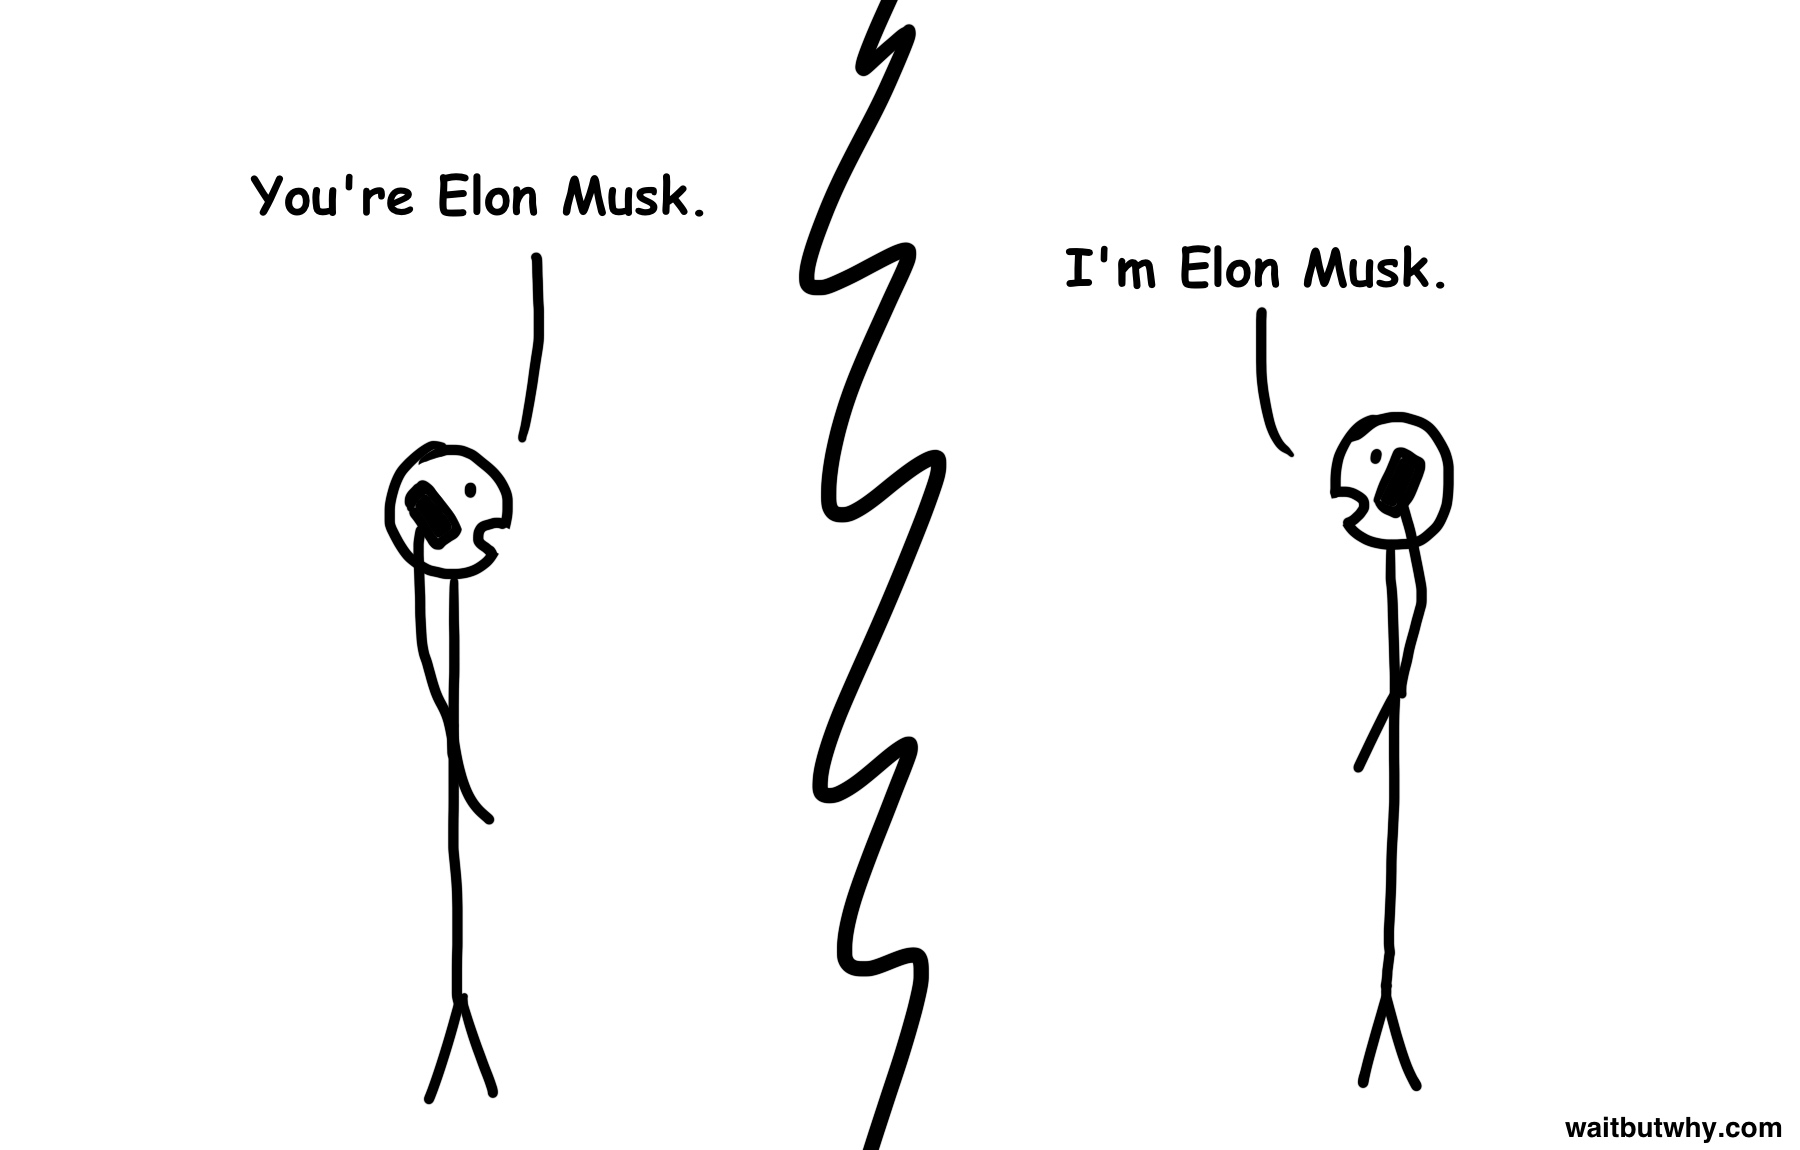 (on the phone) Tim: You're Elon Musk. Elon: I'm Elon Musk.